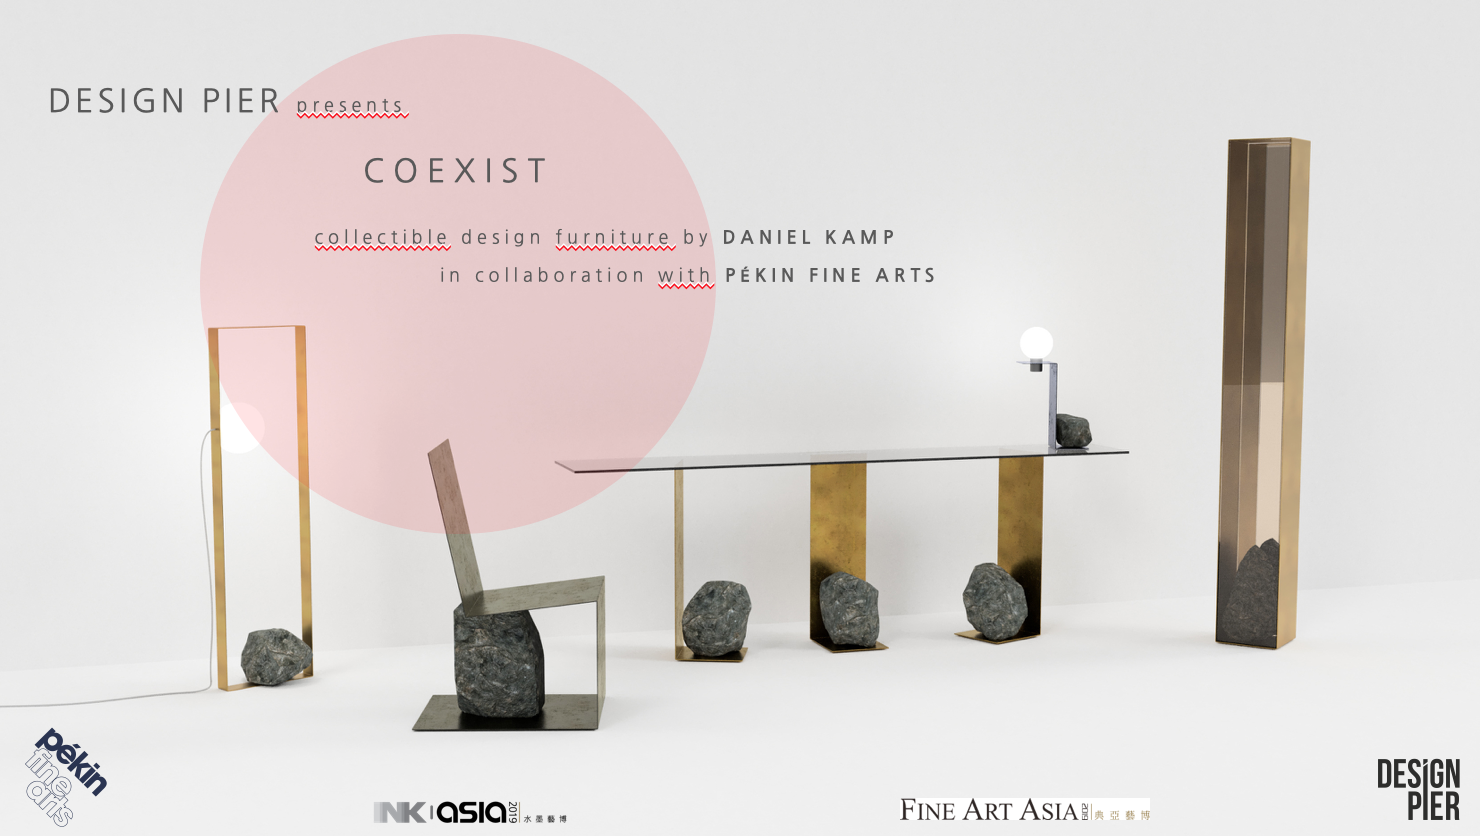 DESIGN PIER at FINE ART ASIA - Oct 3-7, Booth No. Q3Design Pier collaborates with Pékin Fine Arts - Hong Kong and present the beautiful and one of a kind COEXIST collection of Daniel Kamp